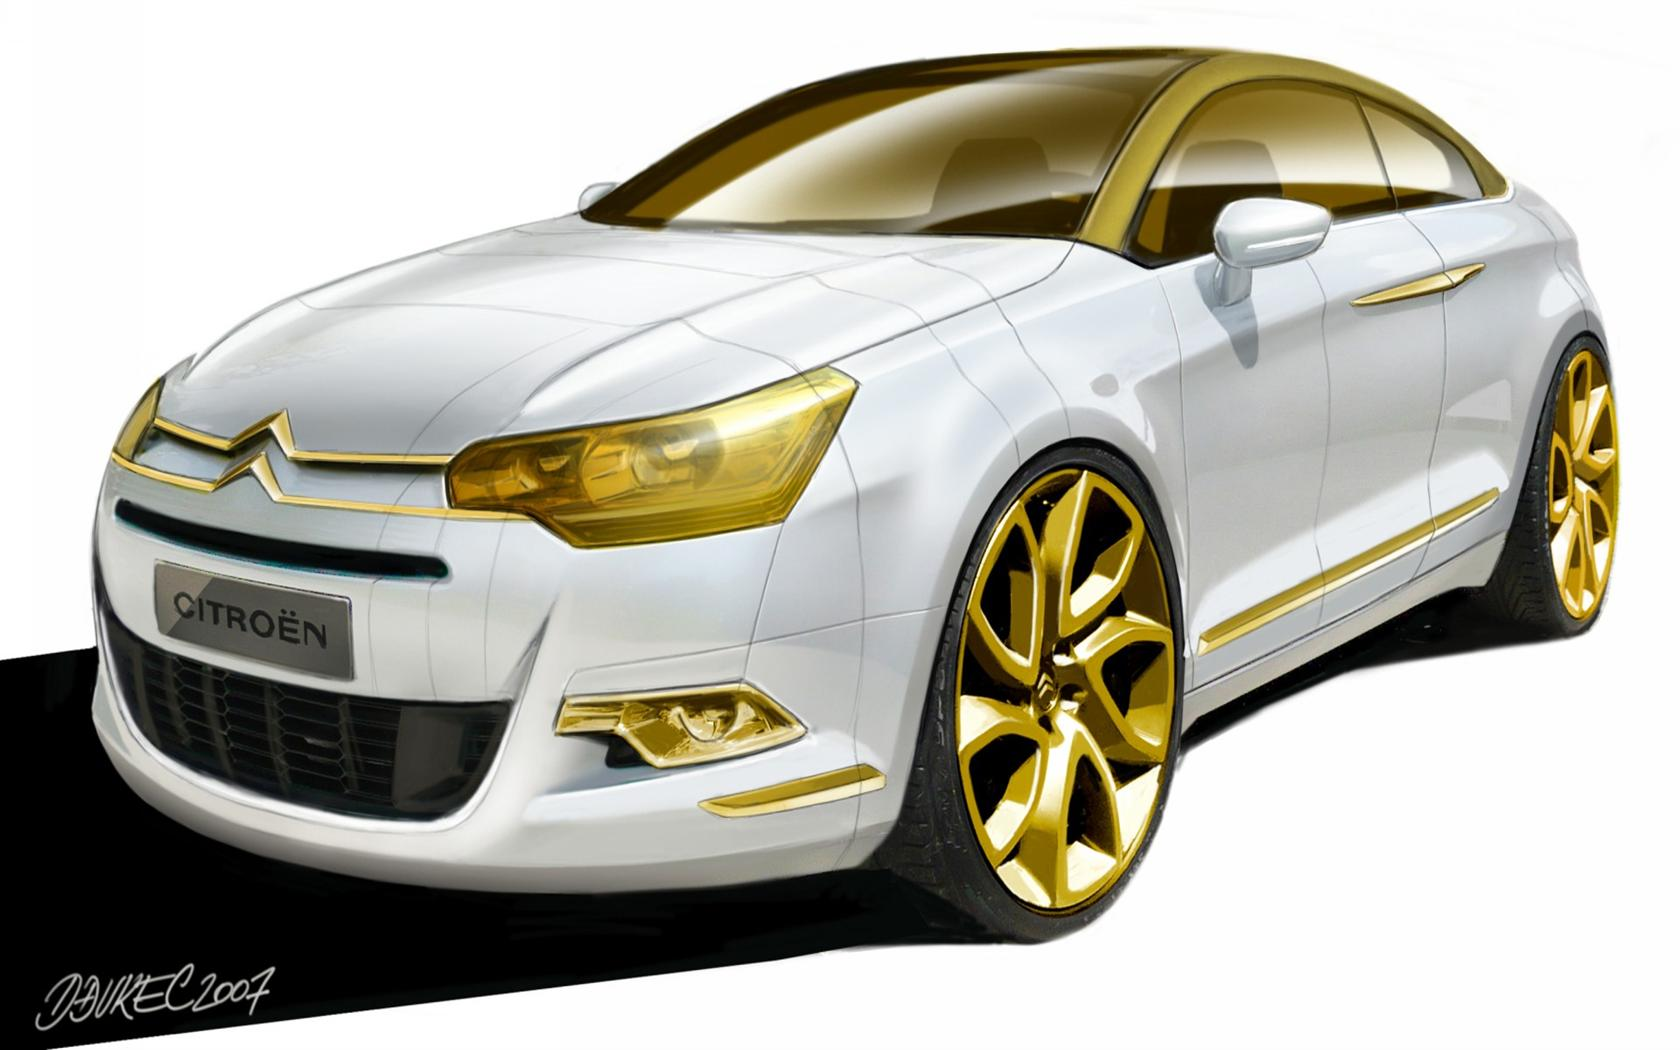 2007 citroen c5 airscape concept images photo 2007 citroen c5 2007 citroen c5 airscape concept image vanachro Image collections